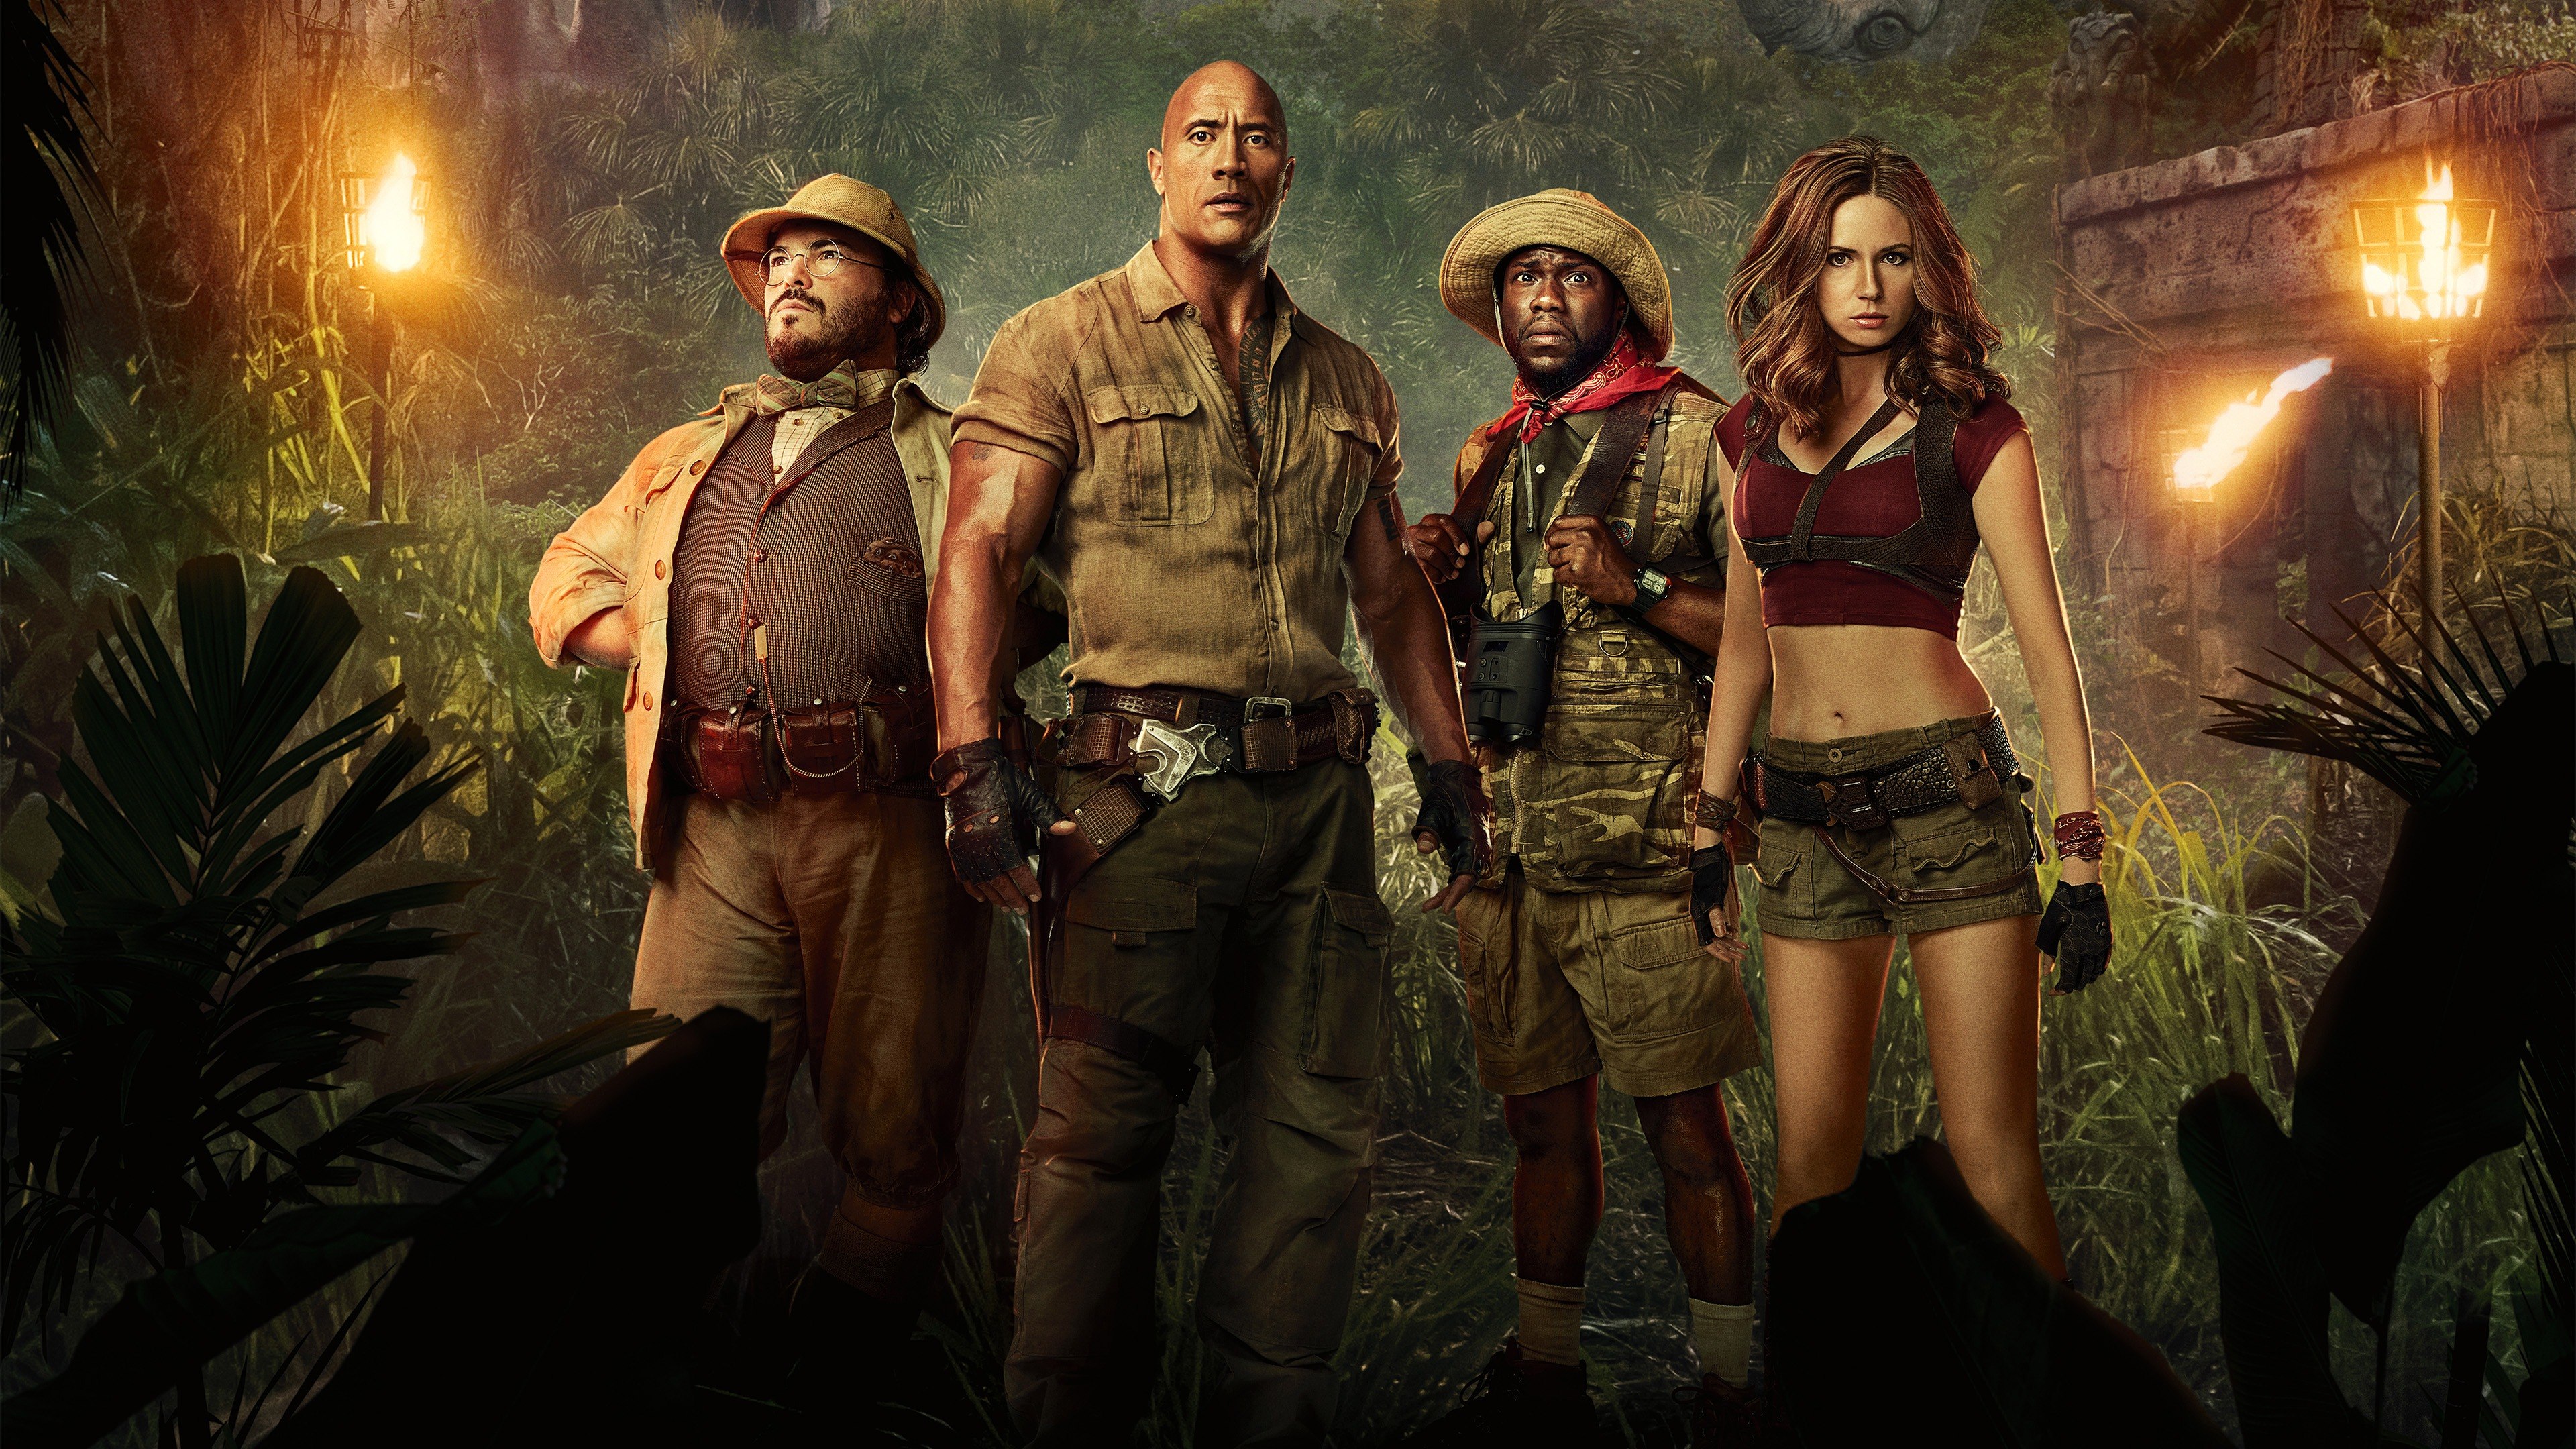 Jumanji Welcome To The Jungle Movie Poster 4K HD Wallpaper